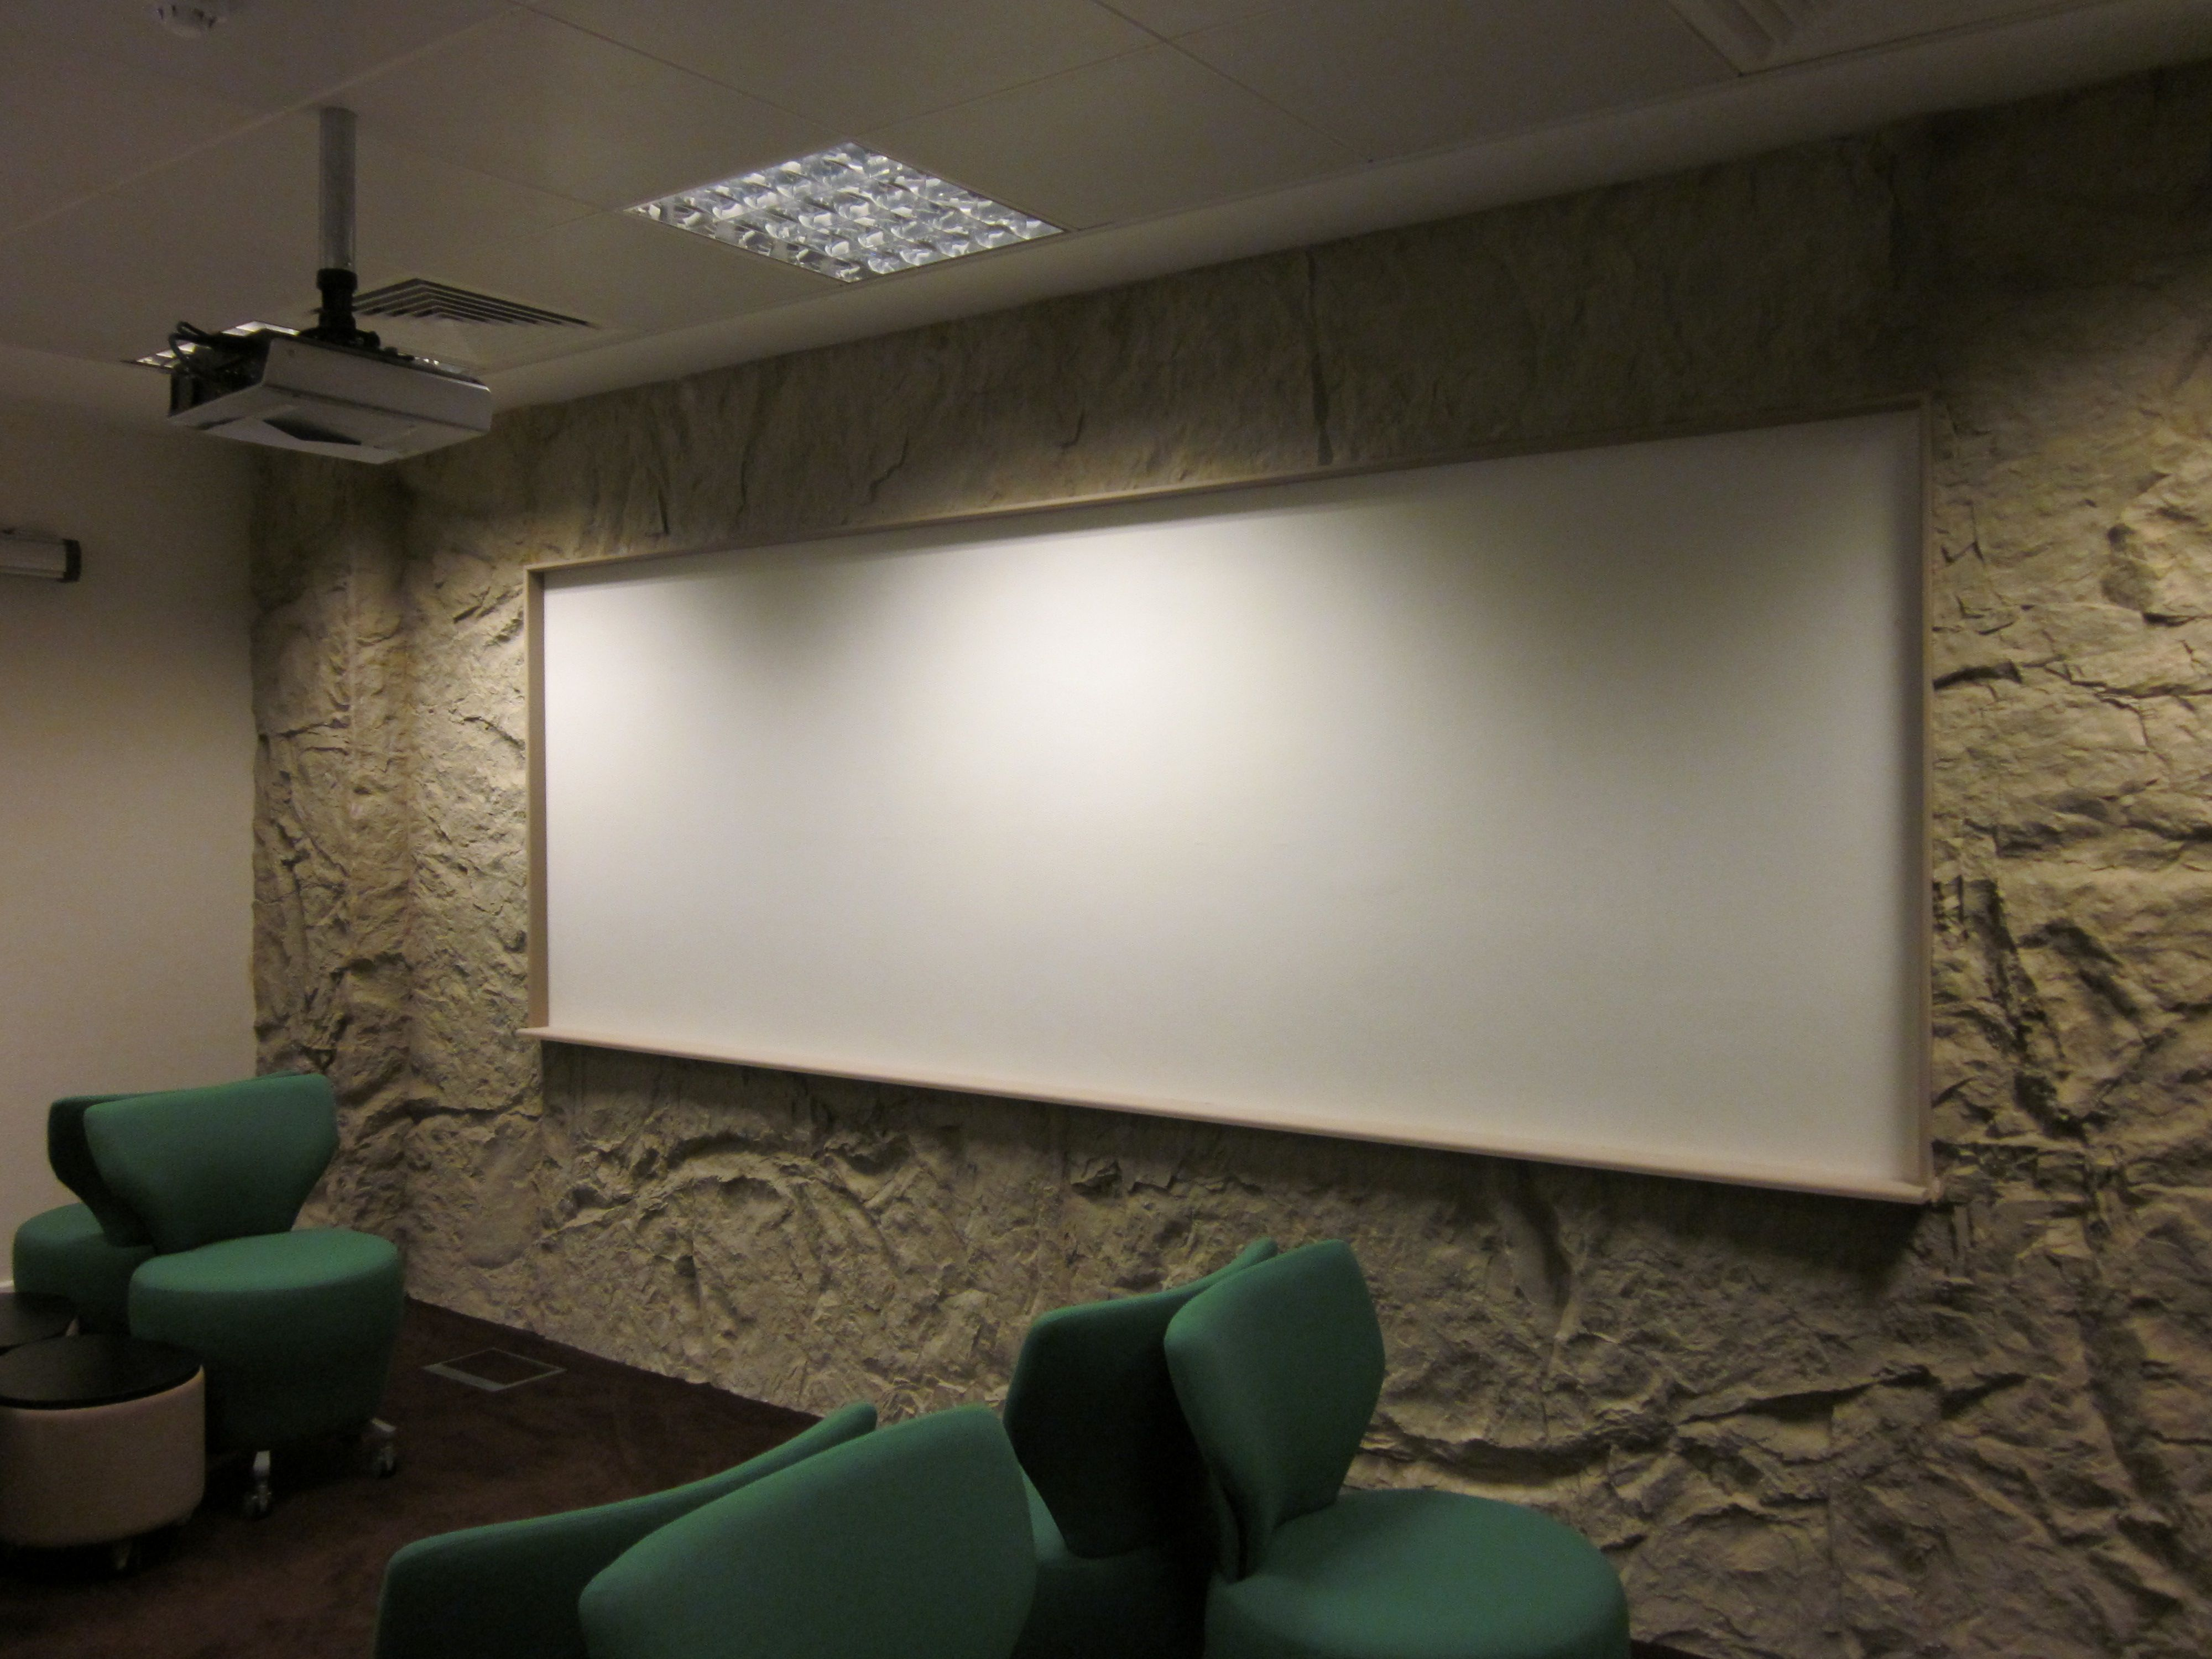 Fiberglass Rock wall design with write on paint, installed into meeting room.